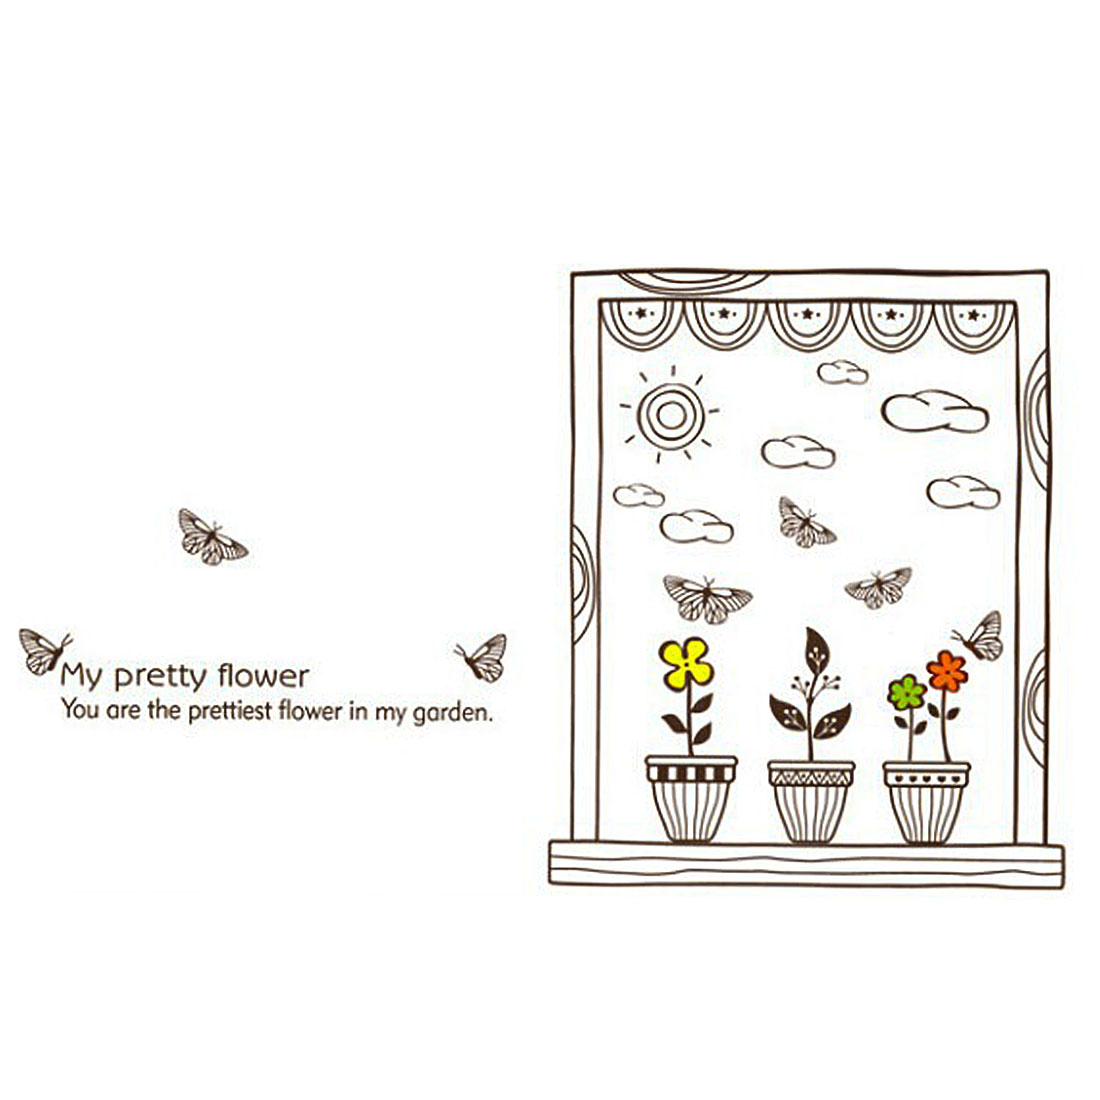 Bedroom Accent DIY Adhesive Flower Cloud Wall Sticker Decal 95 x 56cm Brown